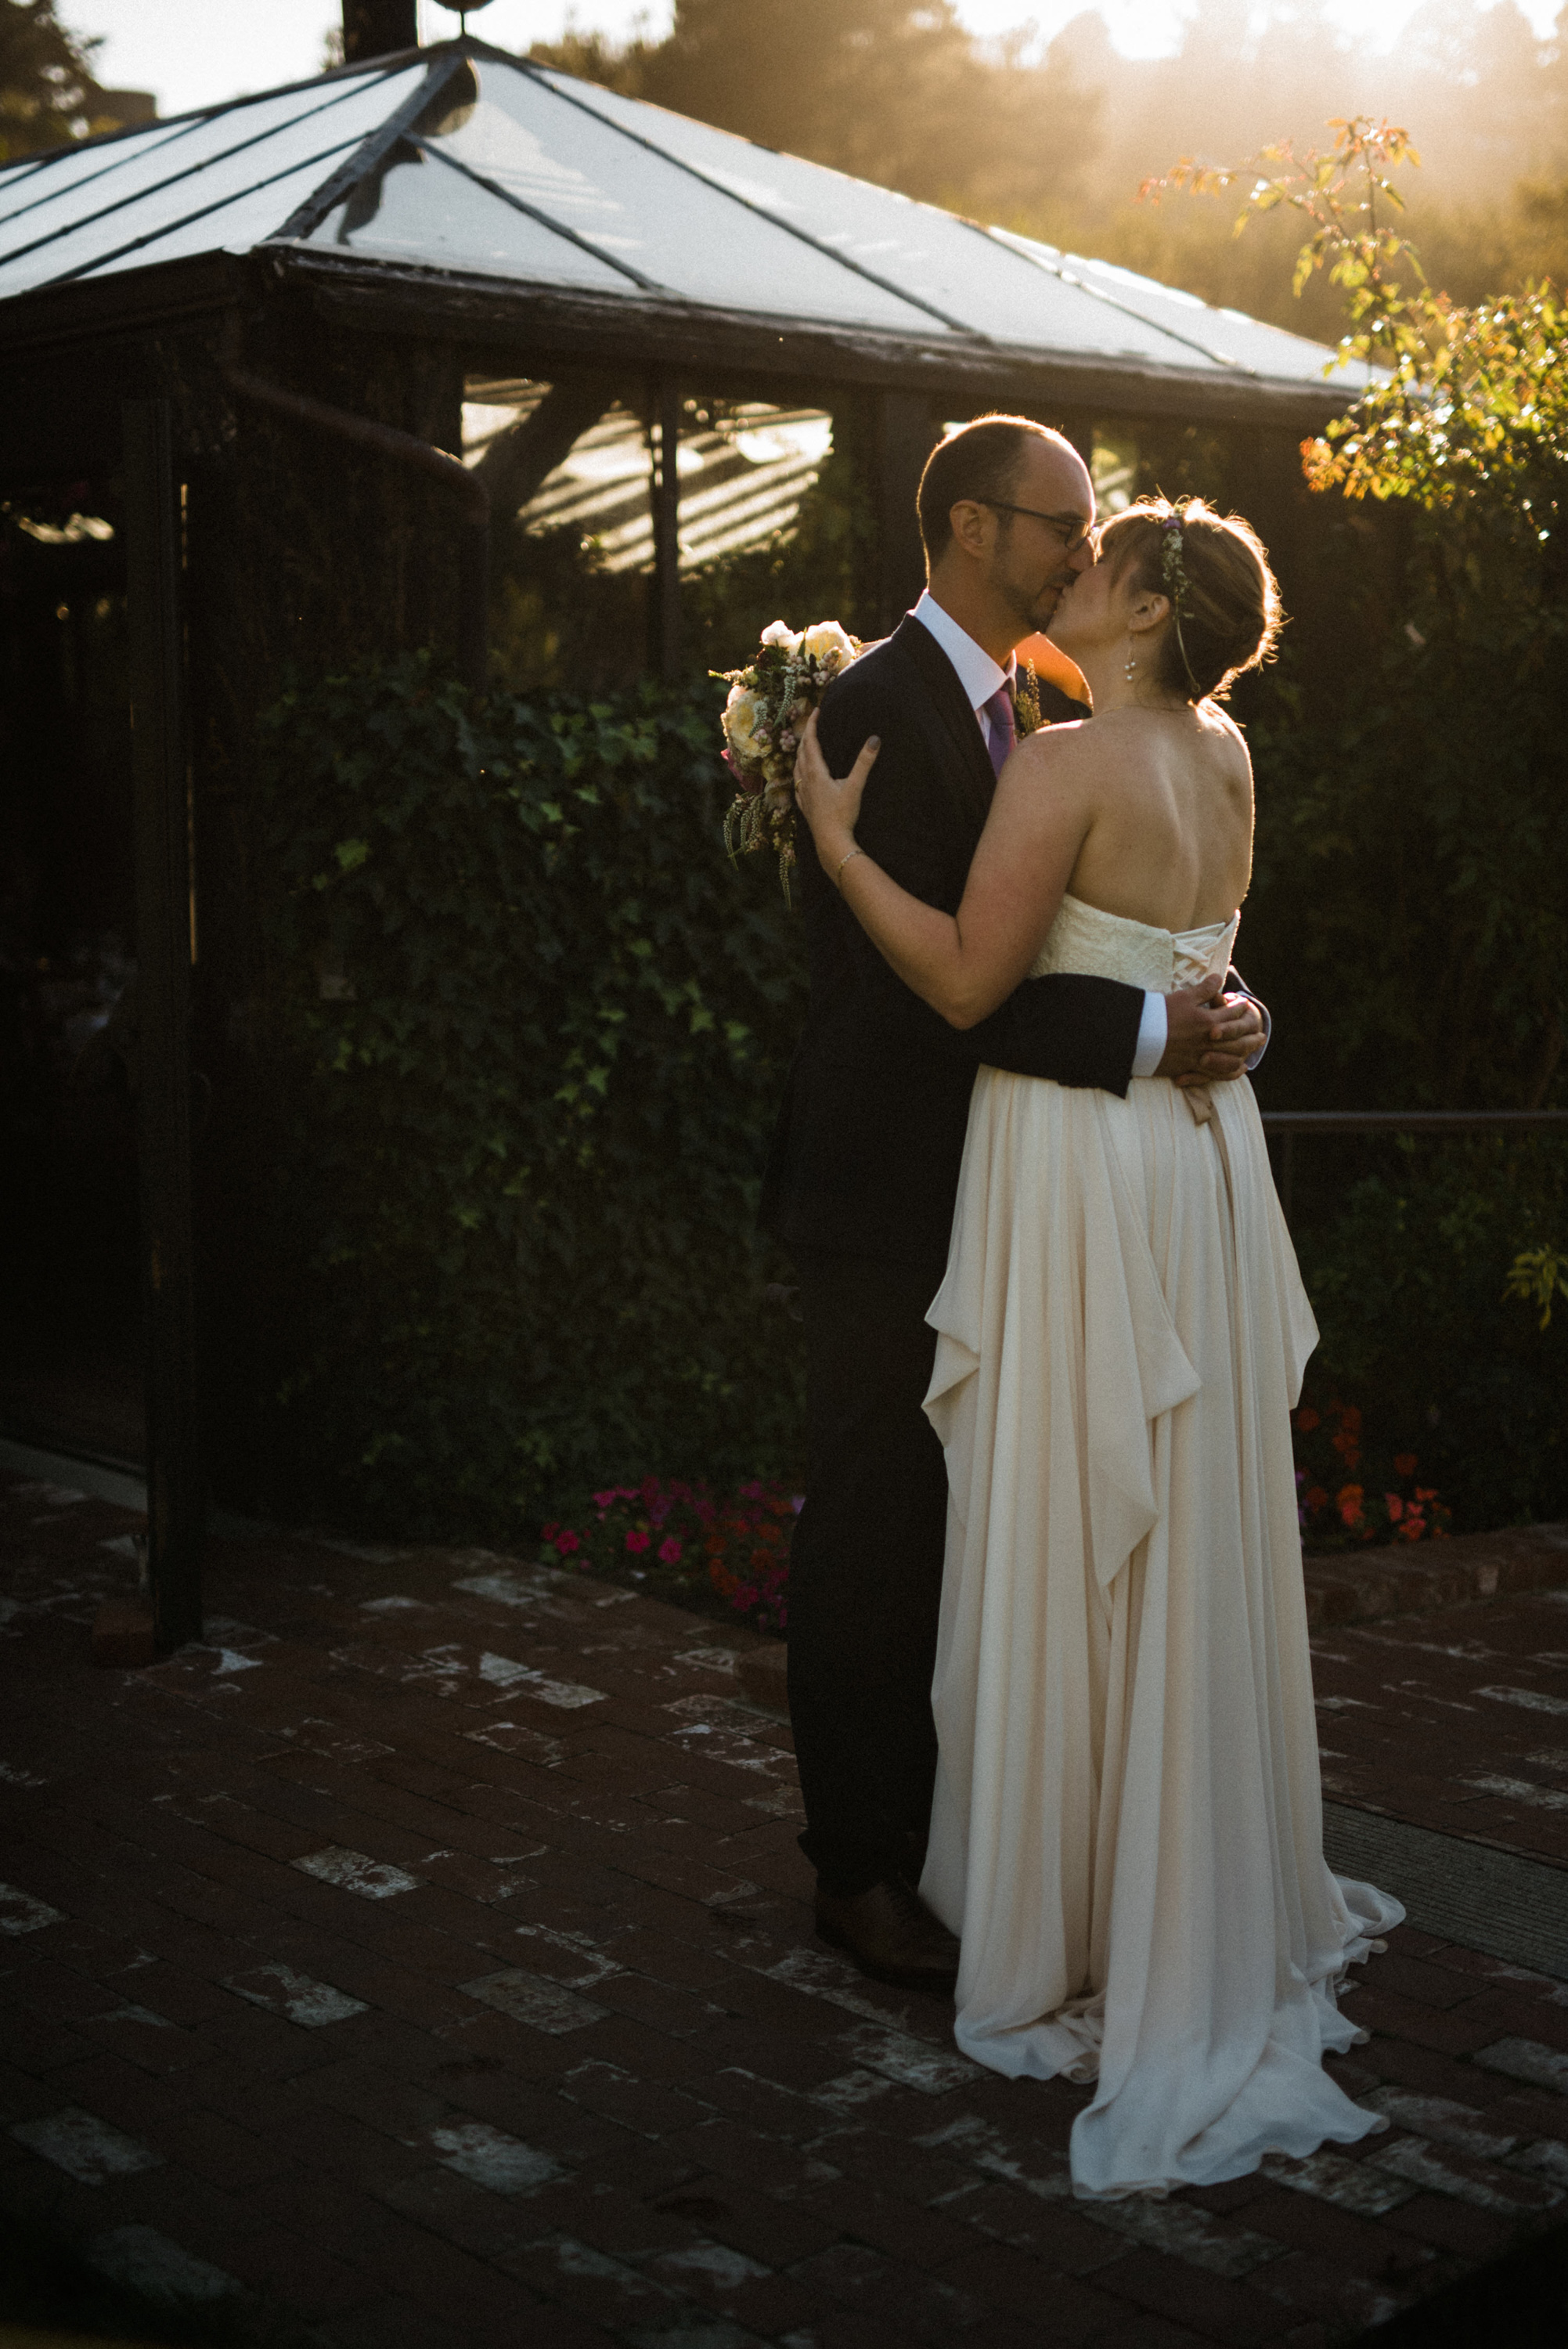 Wedding couple sunset portrait at Pelican Inn Muir Beach